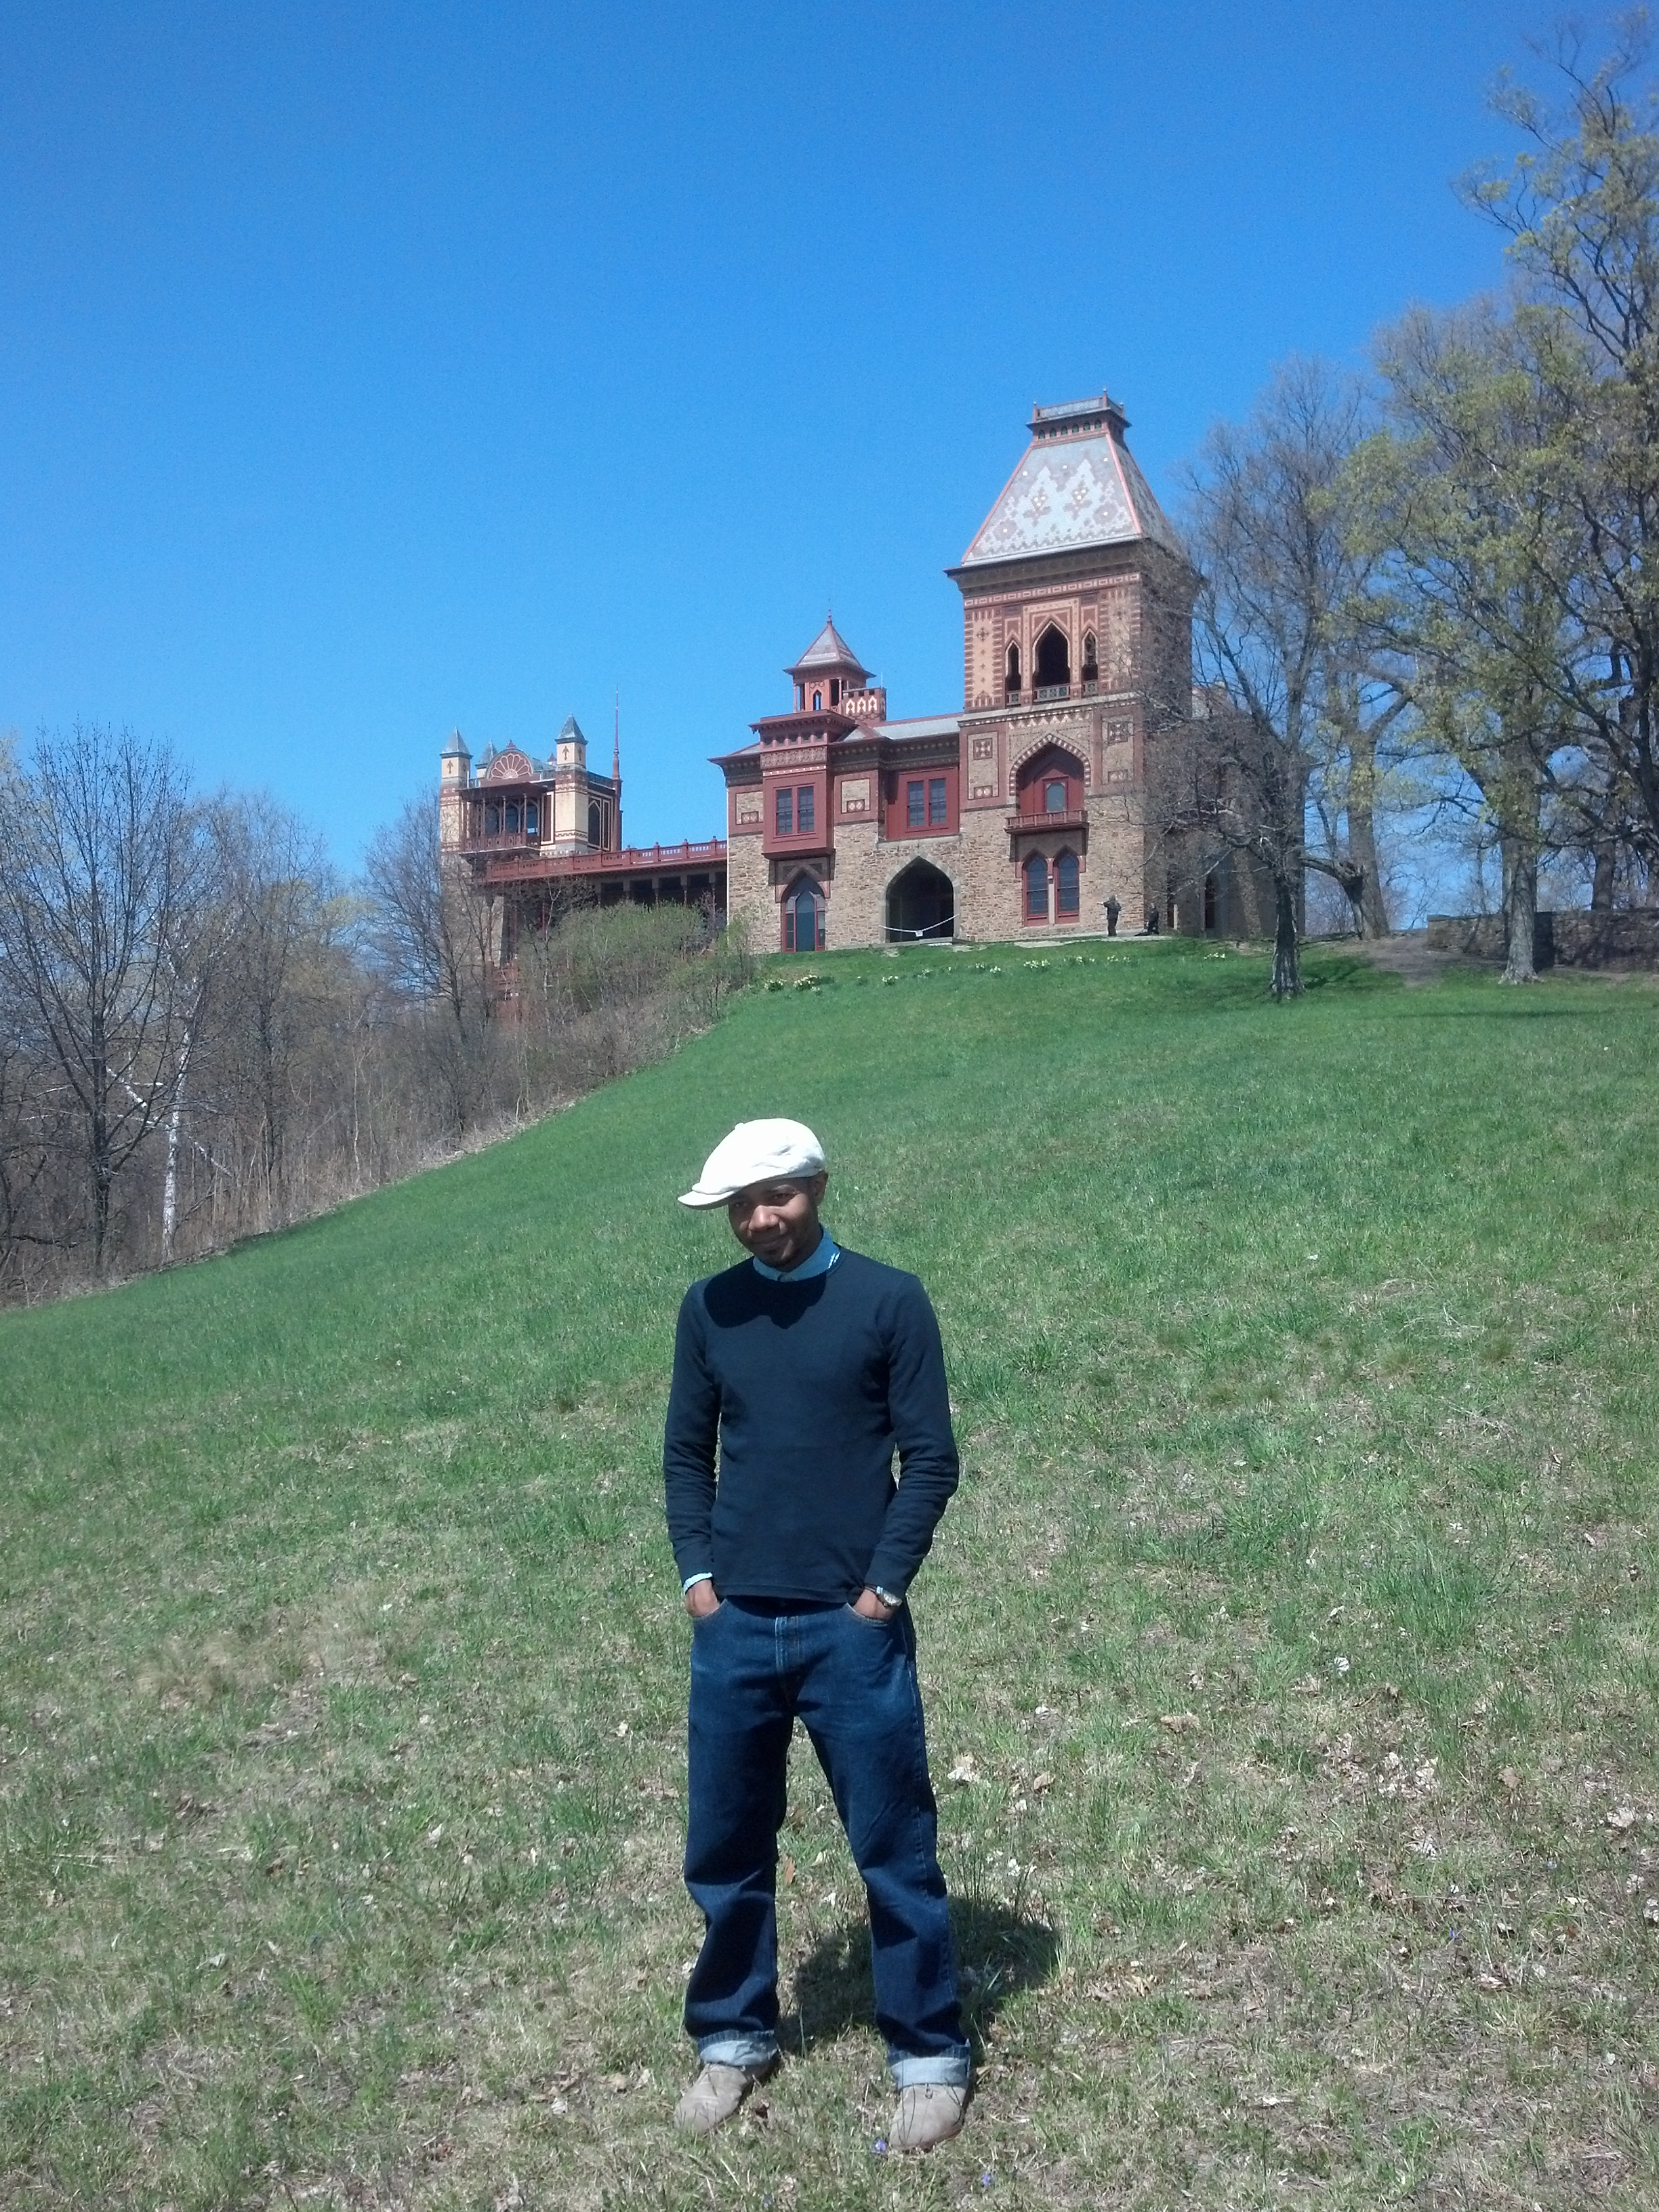 Paul D. Miller (DJ Spooky) at Olana State Historic Site